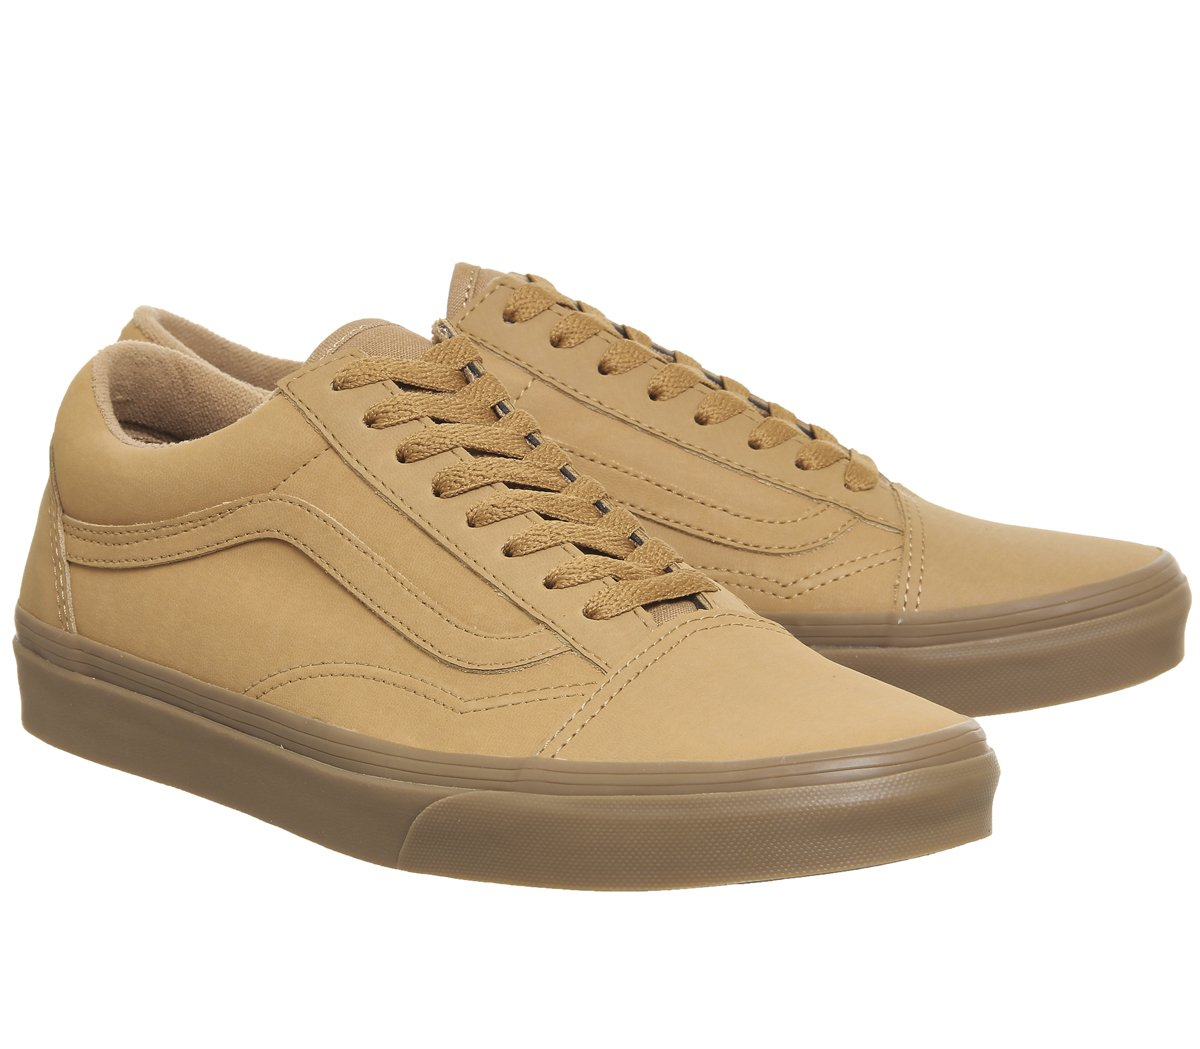 Vans Unisex Old Skool Classic Skate Shoes B01N9FYFKY / 10 M US Women / B01N9FYFKY 8.5 M US Men|Gum Mono 7441ad